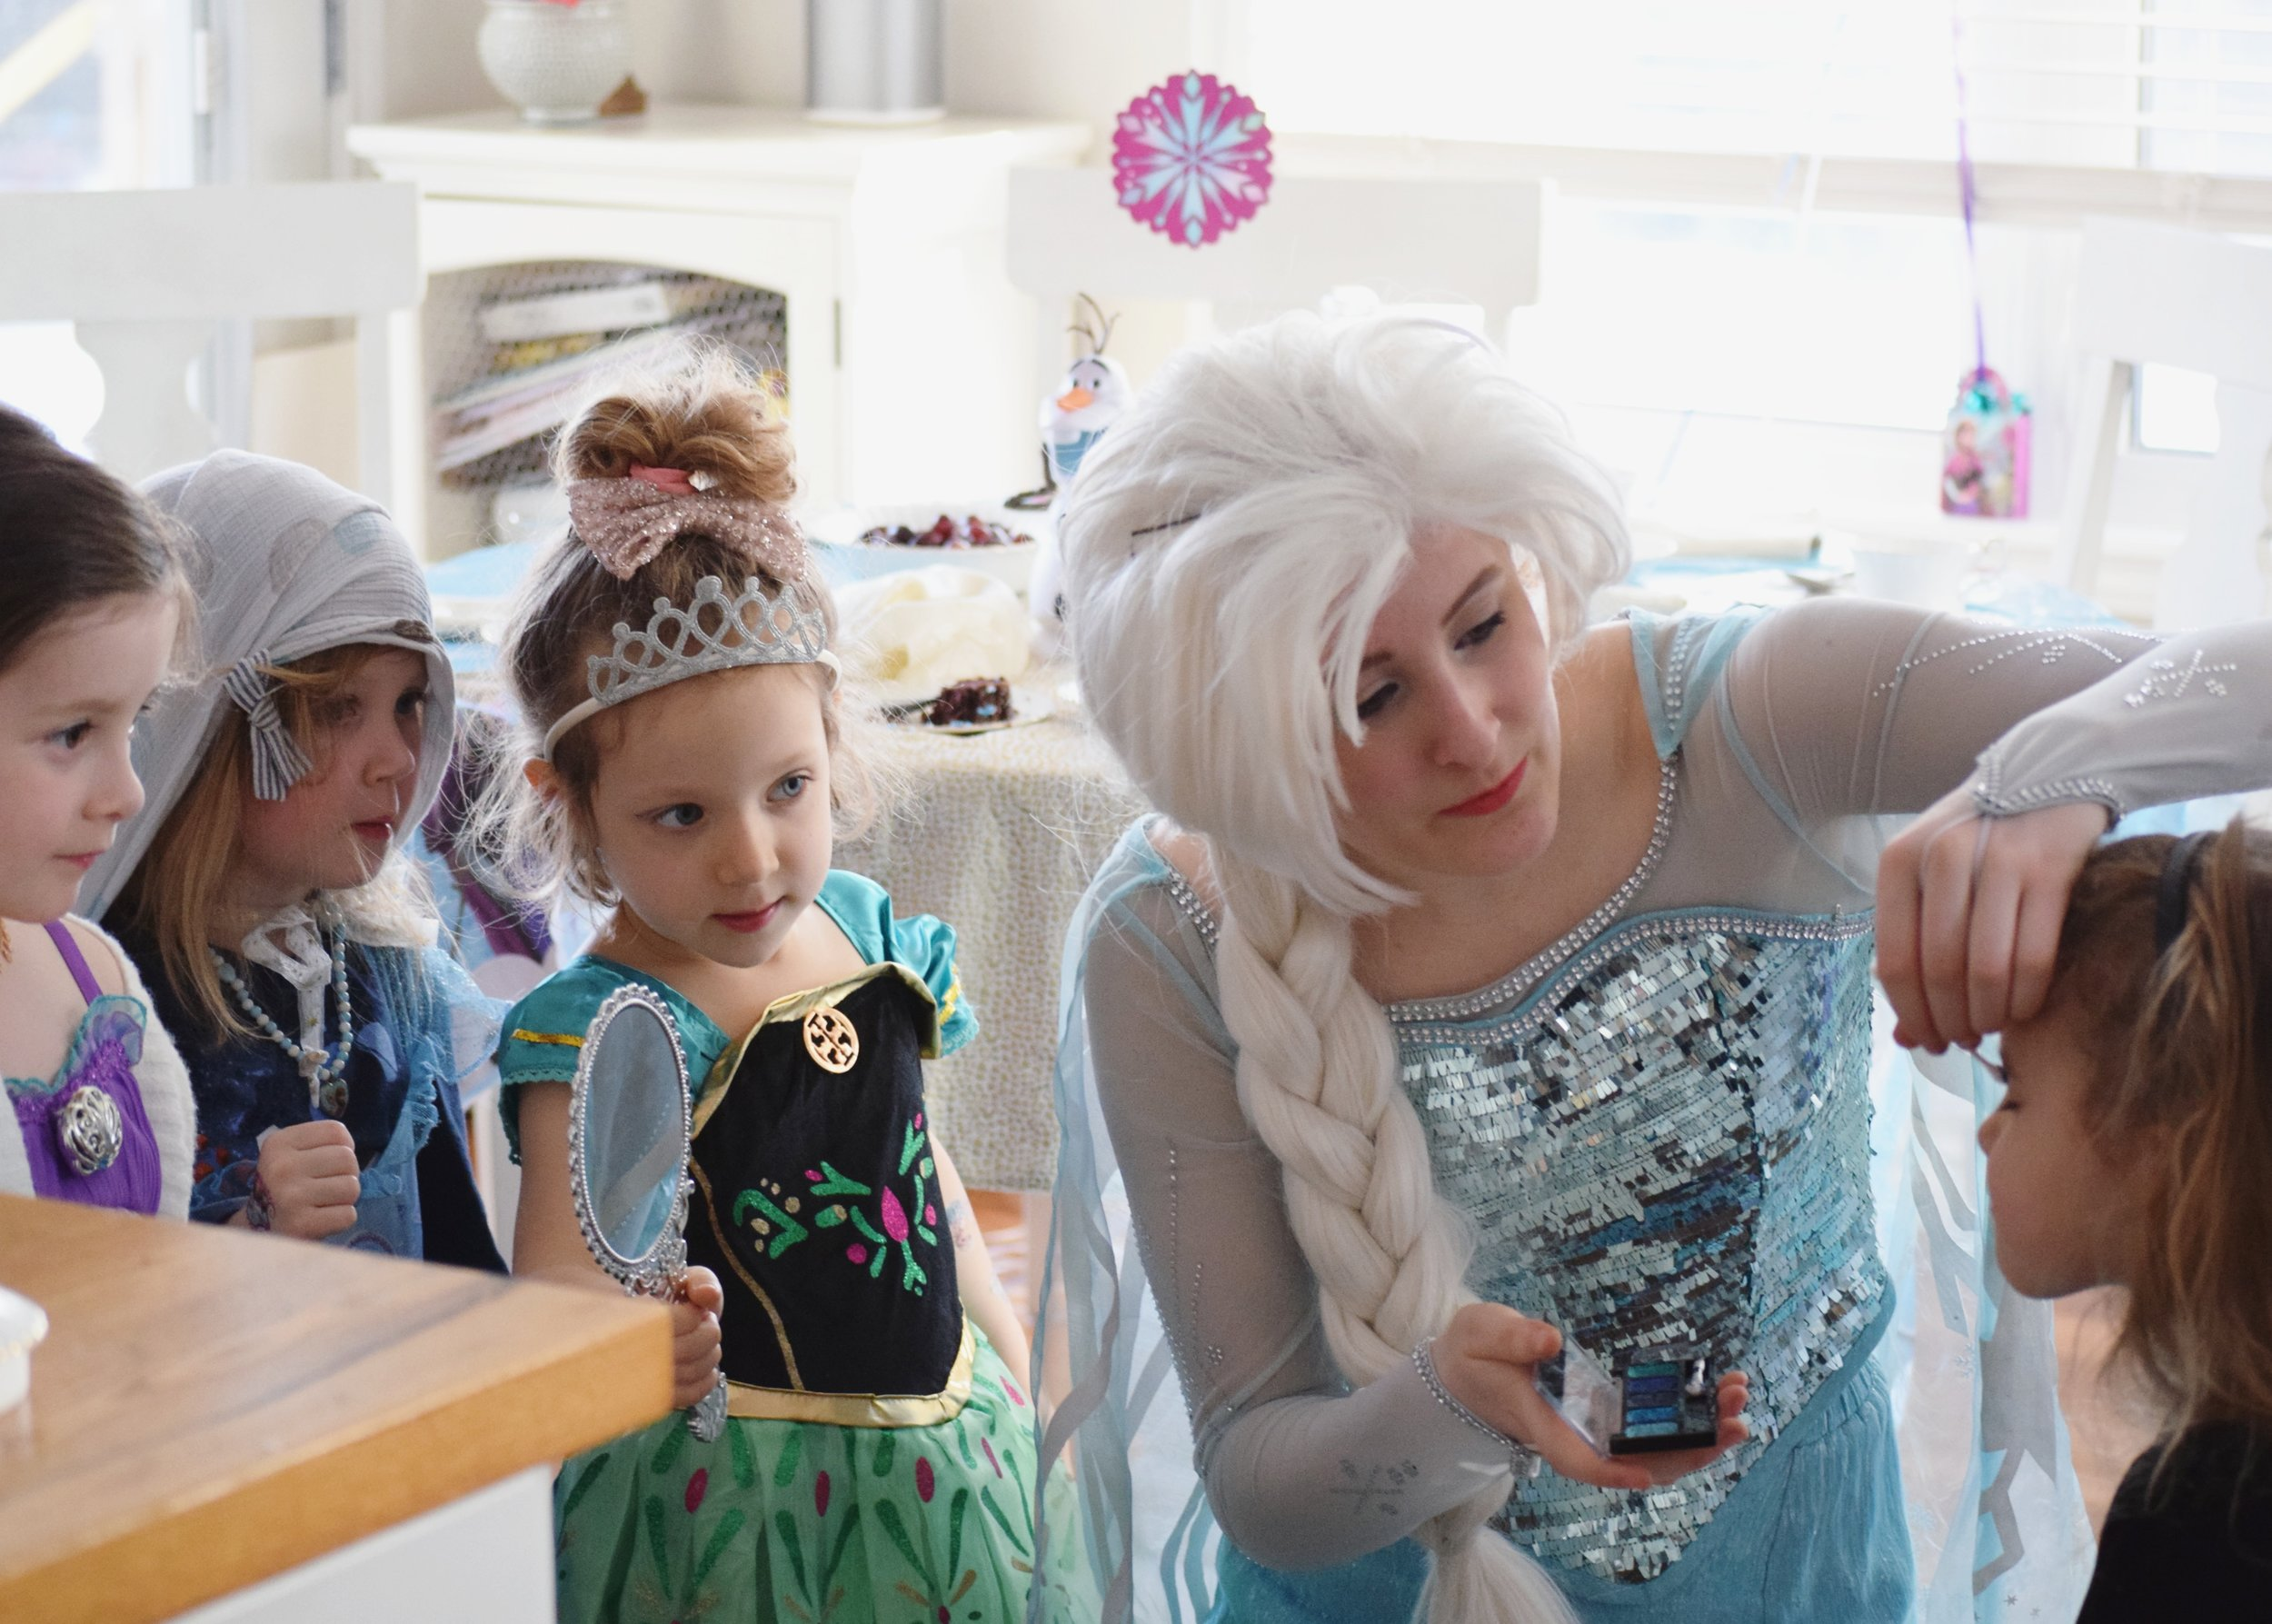 saskatoon birthday party with elsa princess from frozen4.jpg